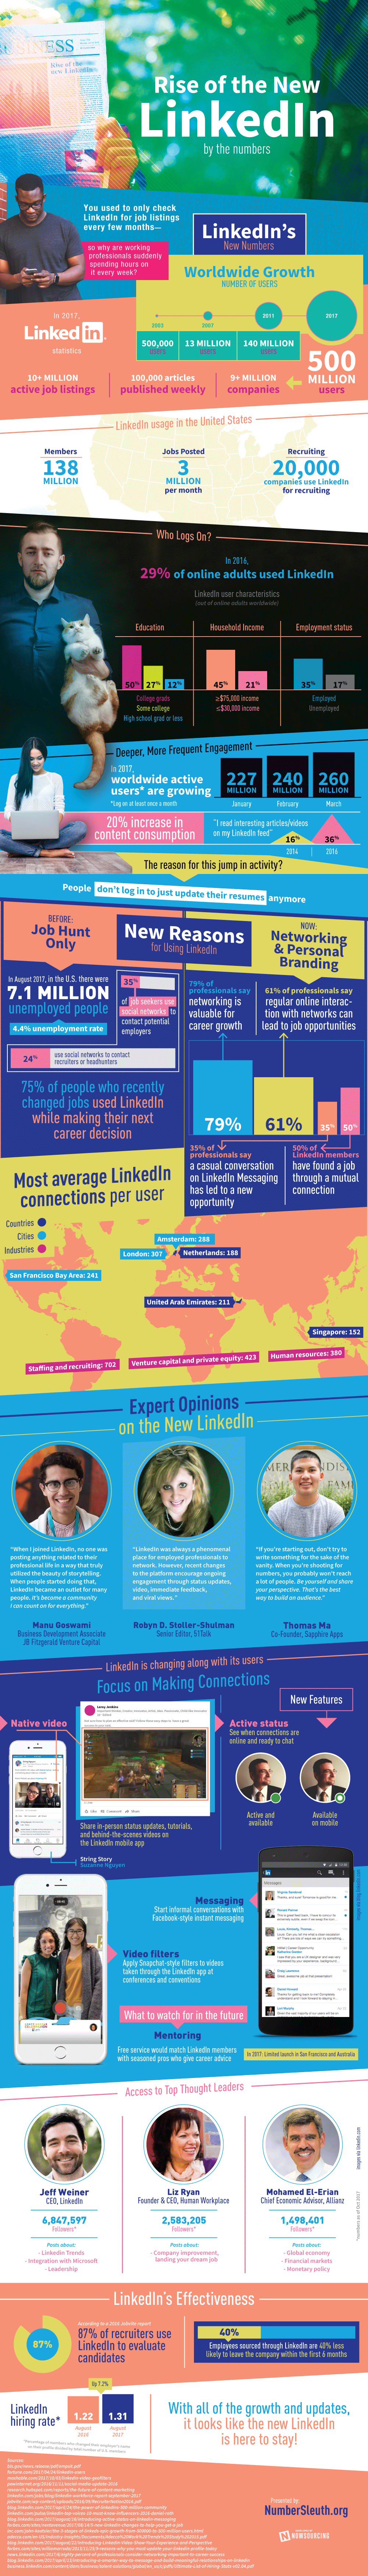 How LinkedIn is Changing the Game - Infographic